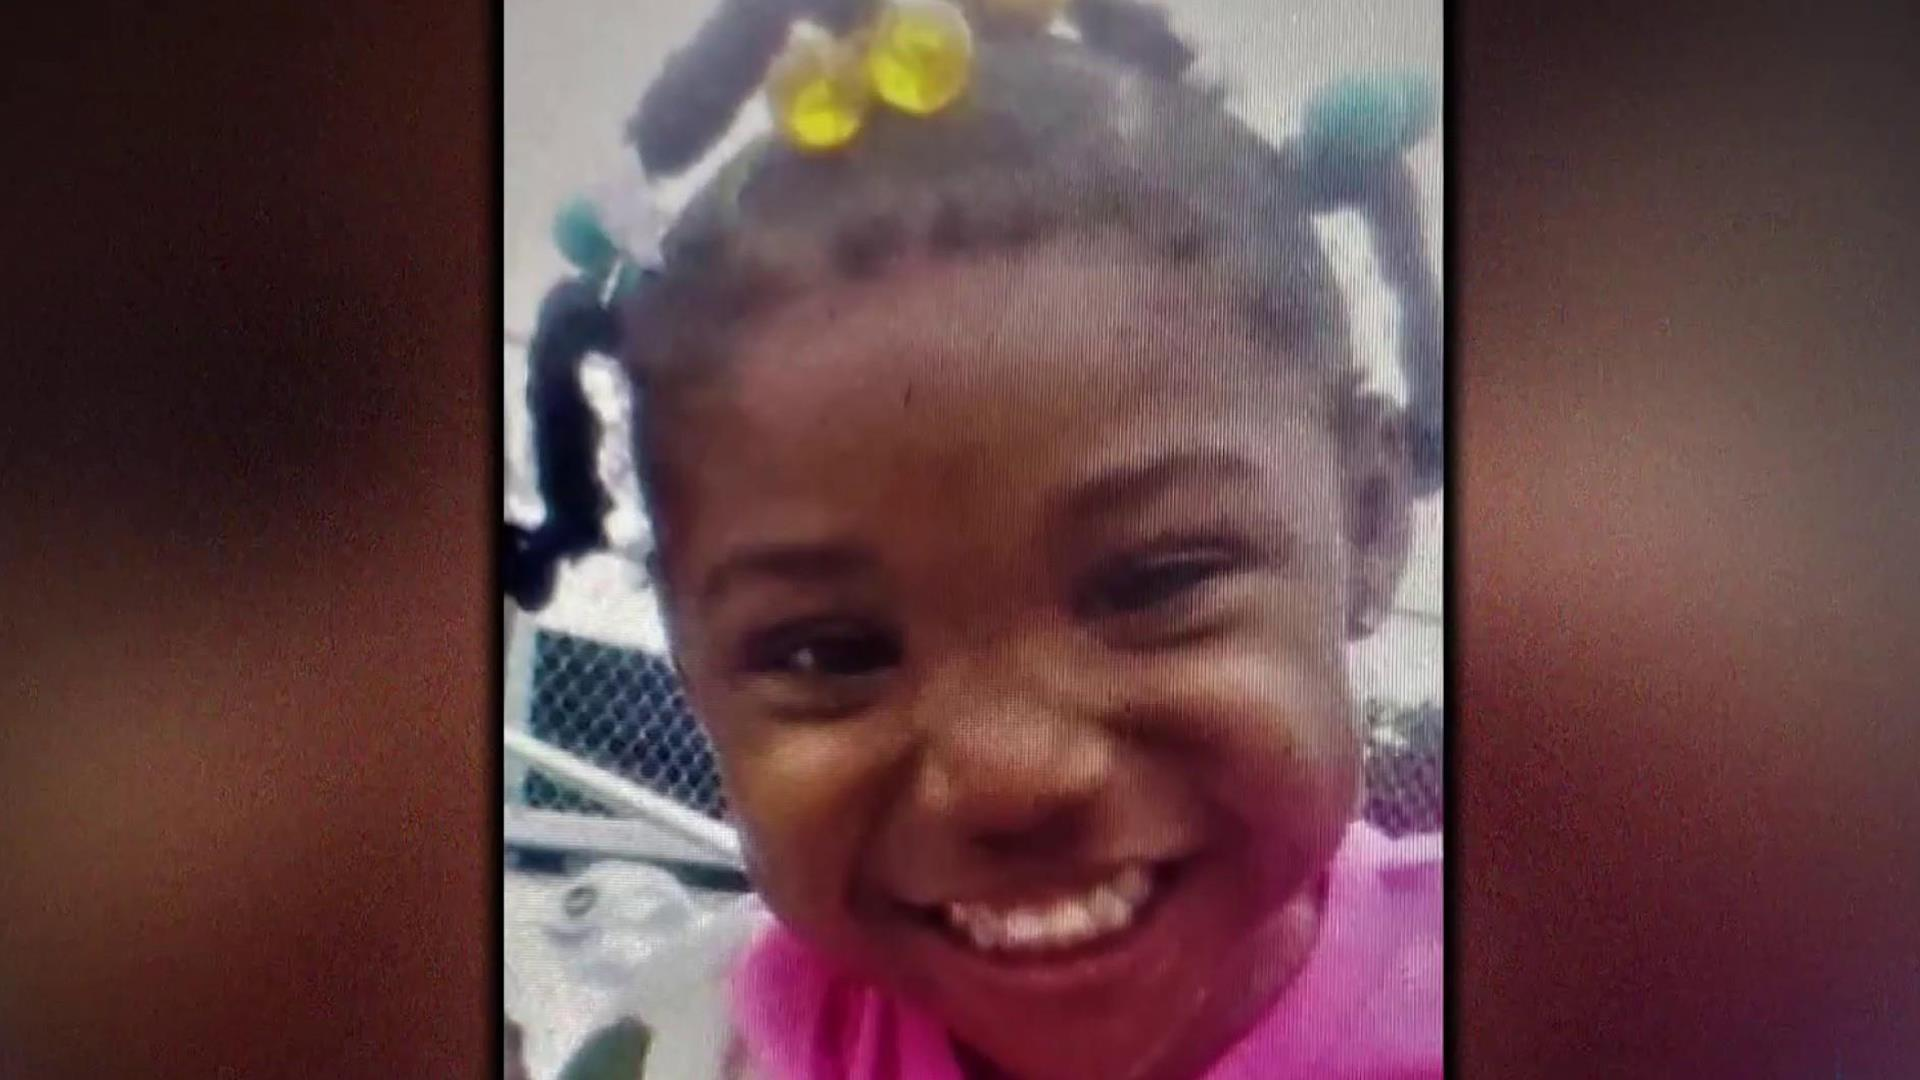 Body of missing 3-year-old Alabama girl found in dumpster, police say